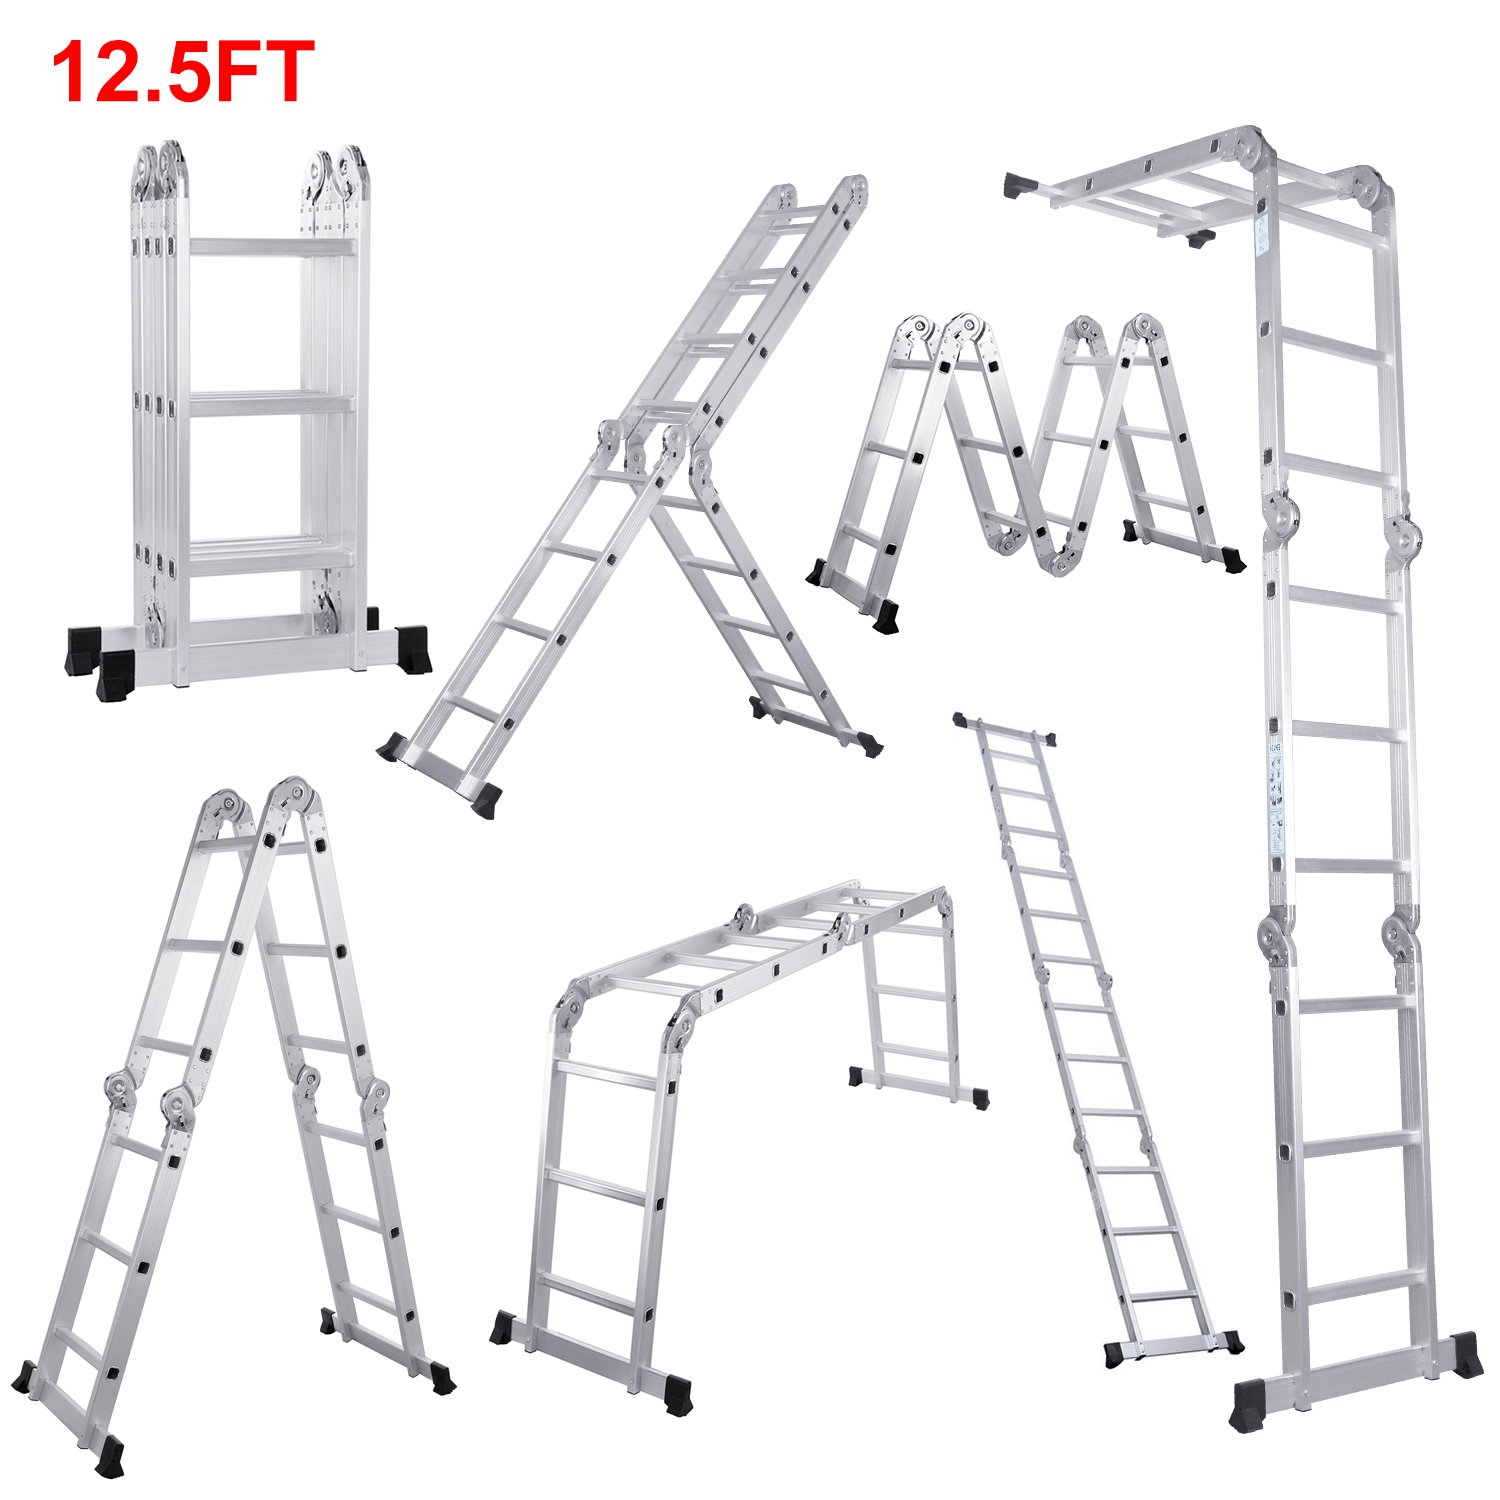 Lifewit 12.5ft Folding Ladder Aluminum Extension 7 in 1 Multi Purpose Extendable Platform Scaffold Heavy Duty by Lifewit